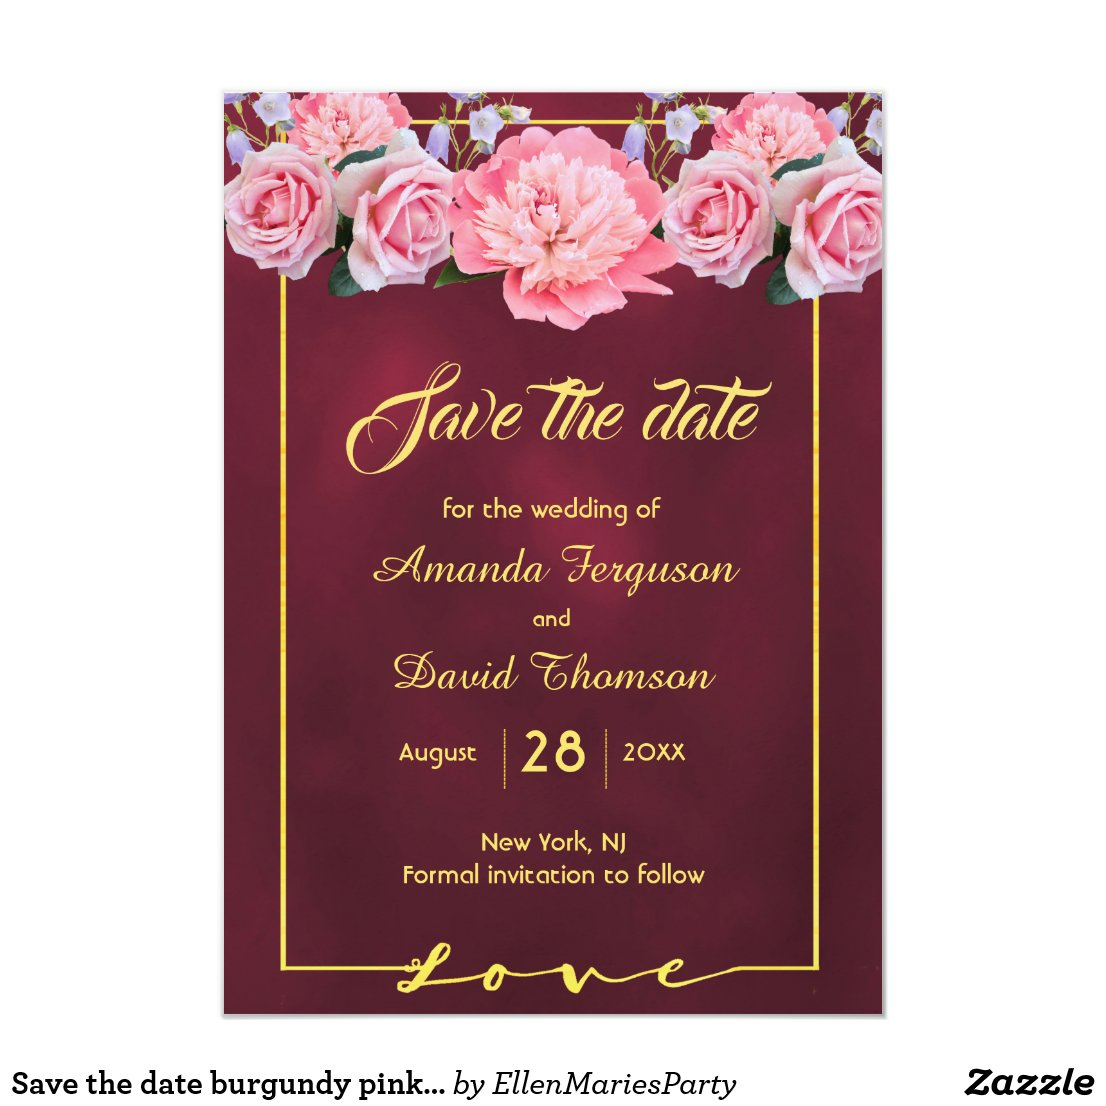 Save the date burgundy with pink flowers